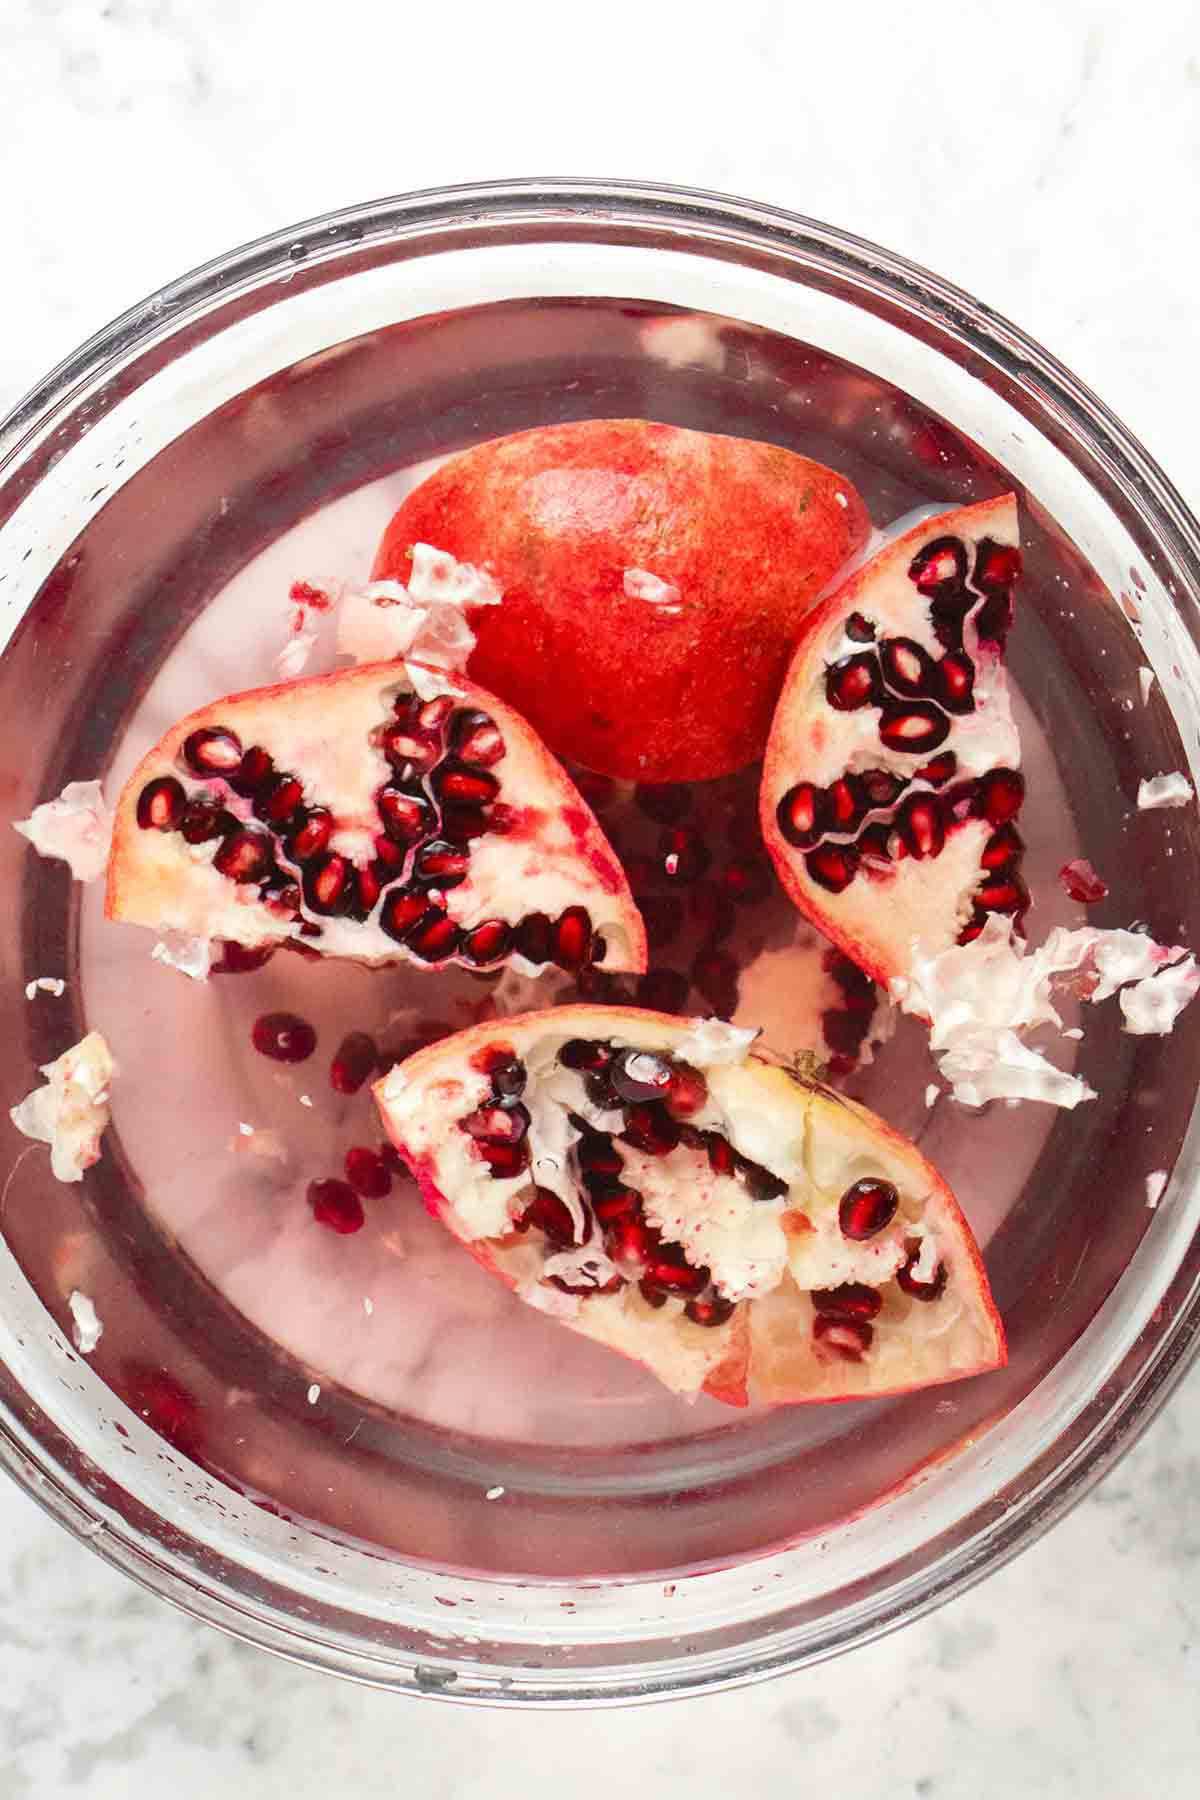 pomegranate pieces floating in a bowl of water